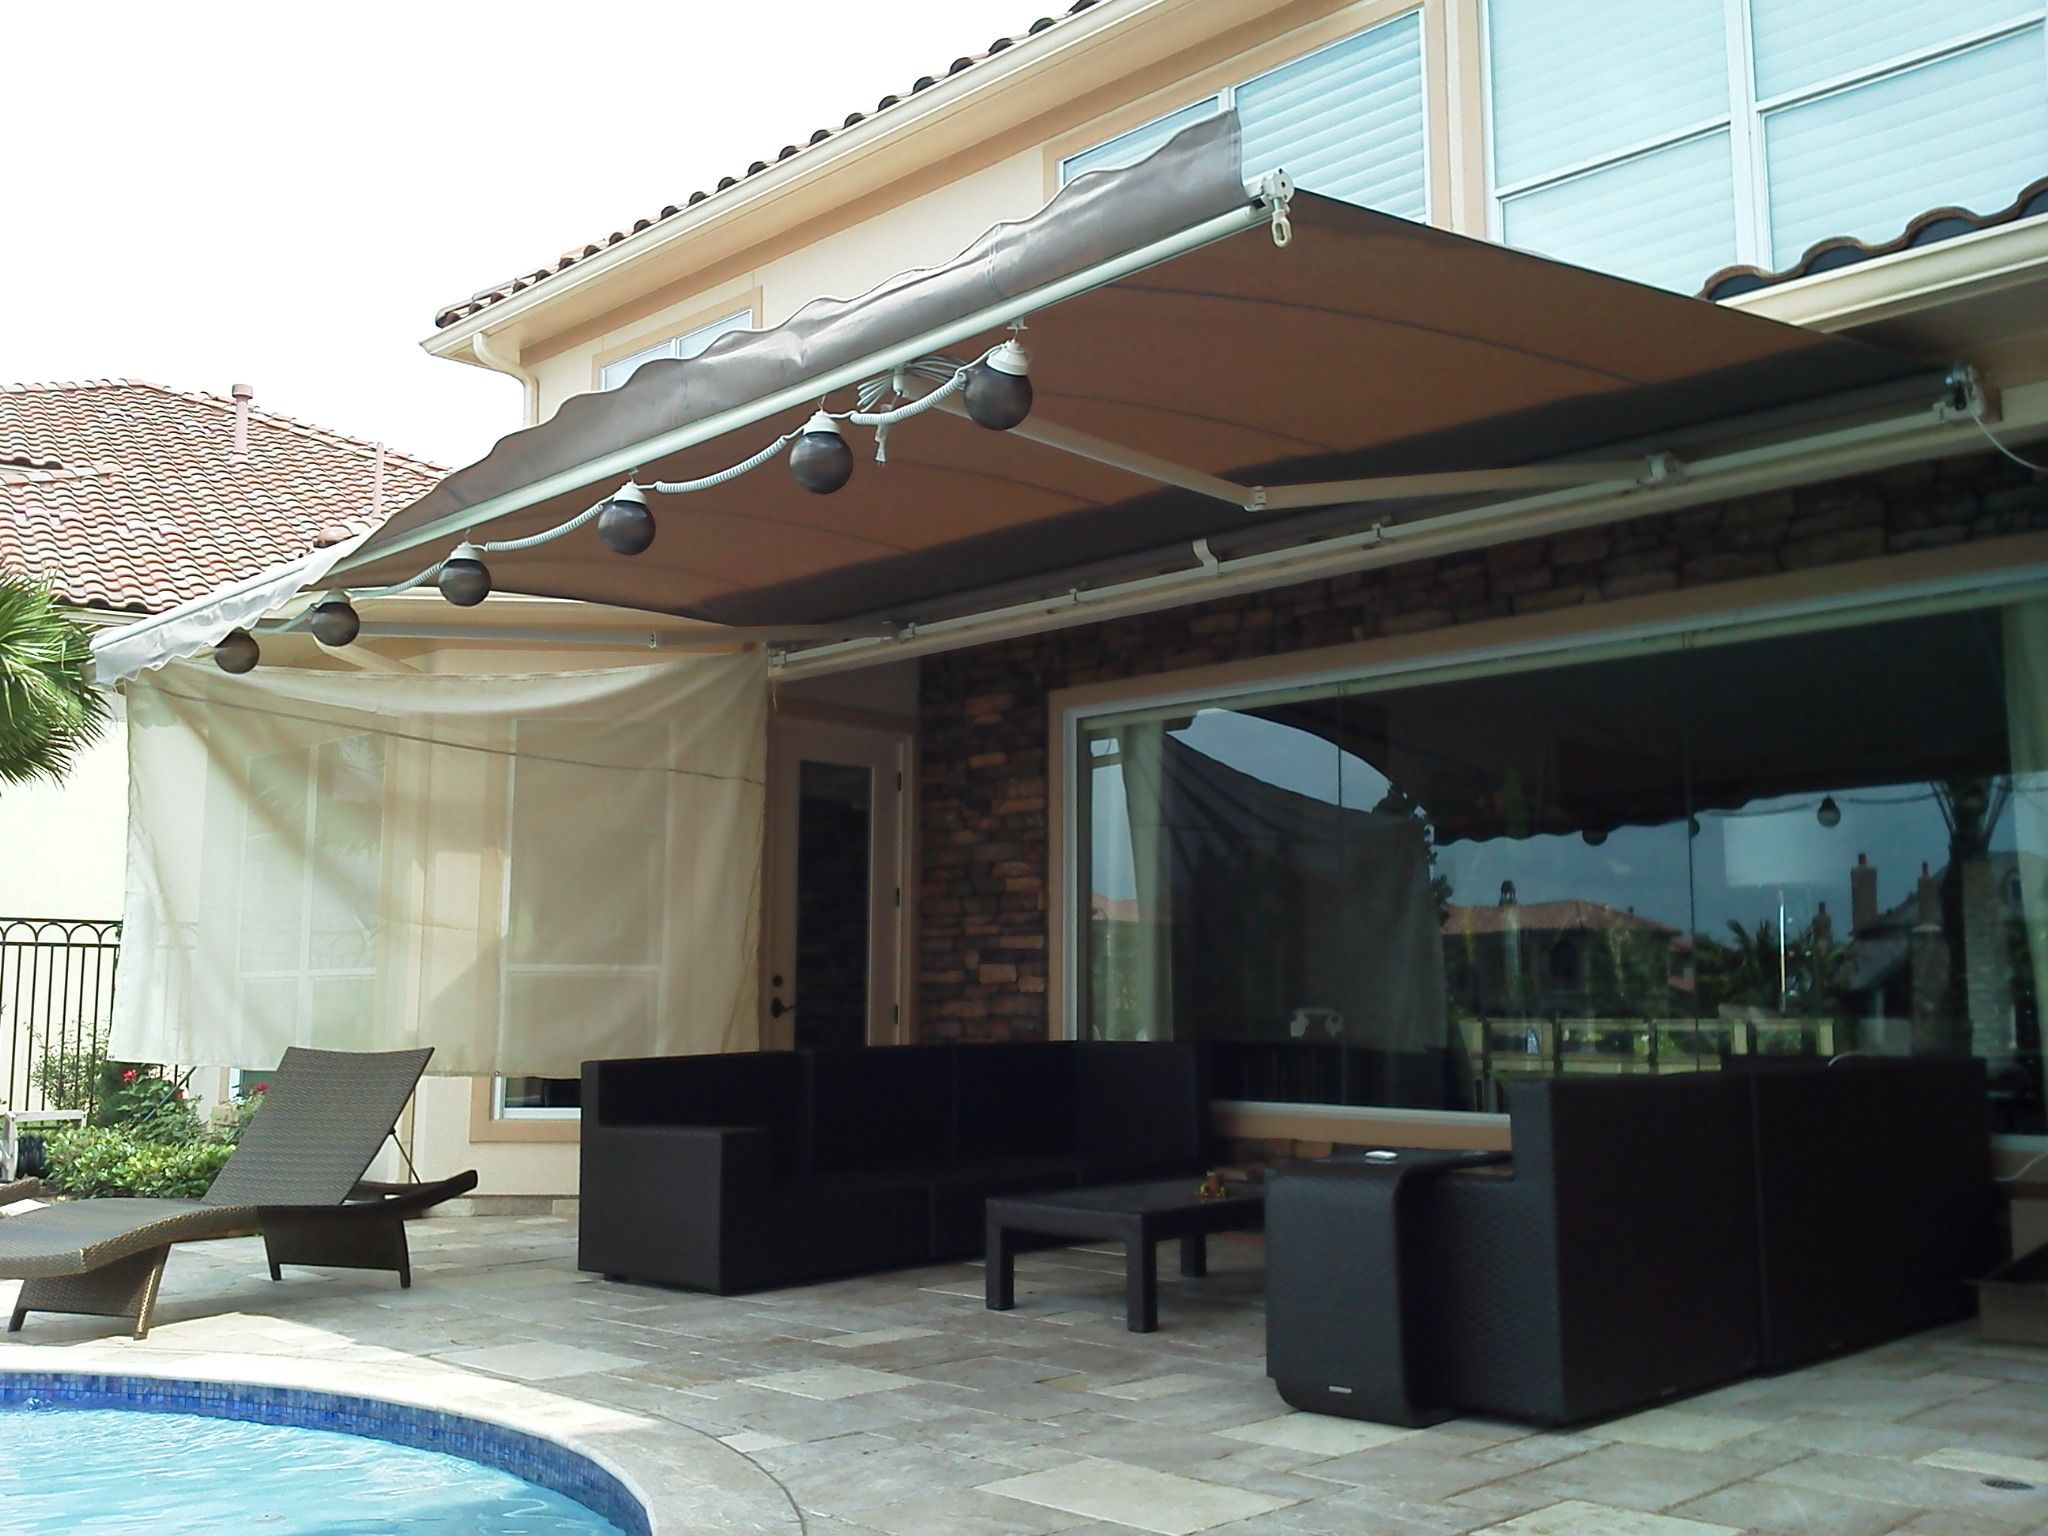 The SunSetter Retractable Awning is one of our many shade ...